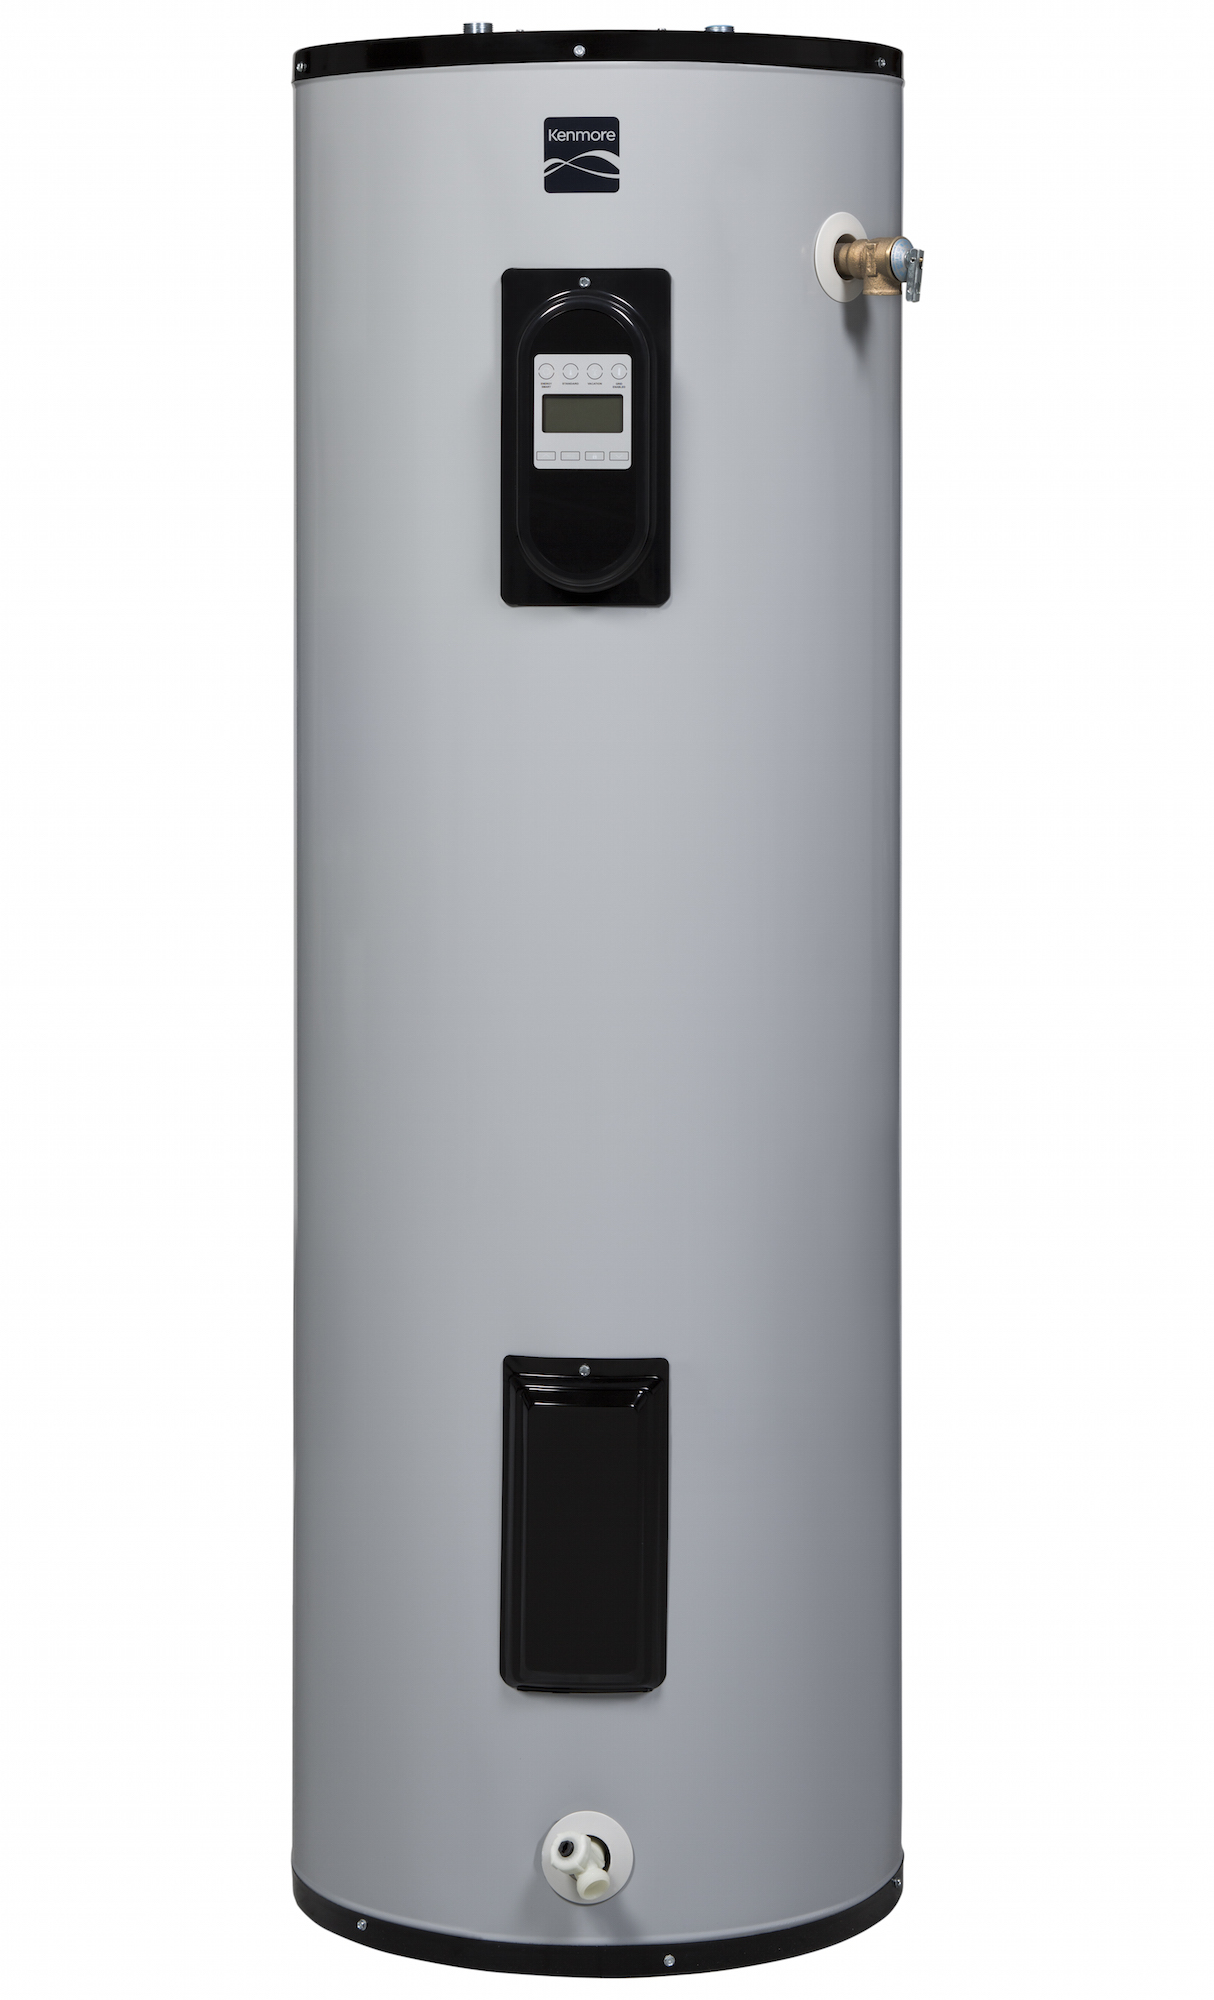 Kenmore 58250 50 gal. 12-Year Tall Electric Water Heater